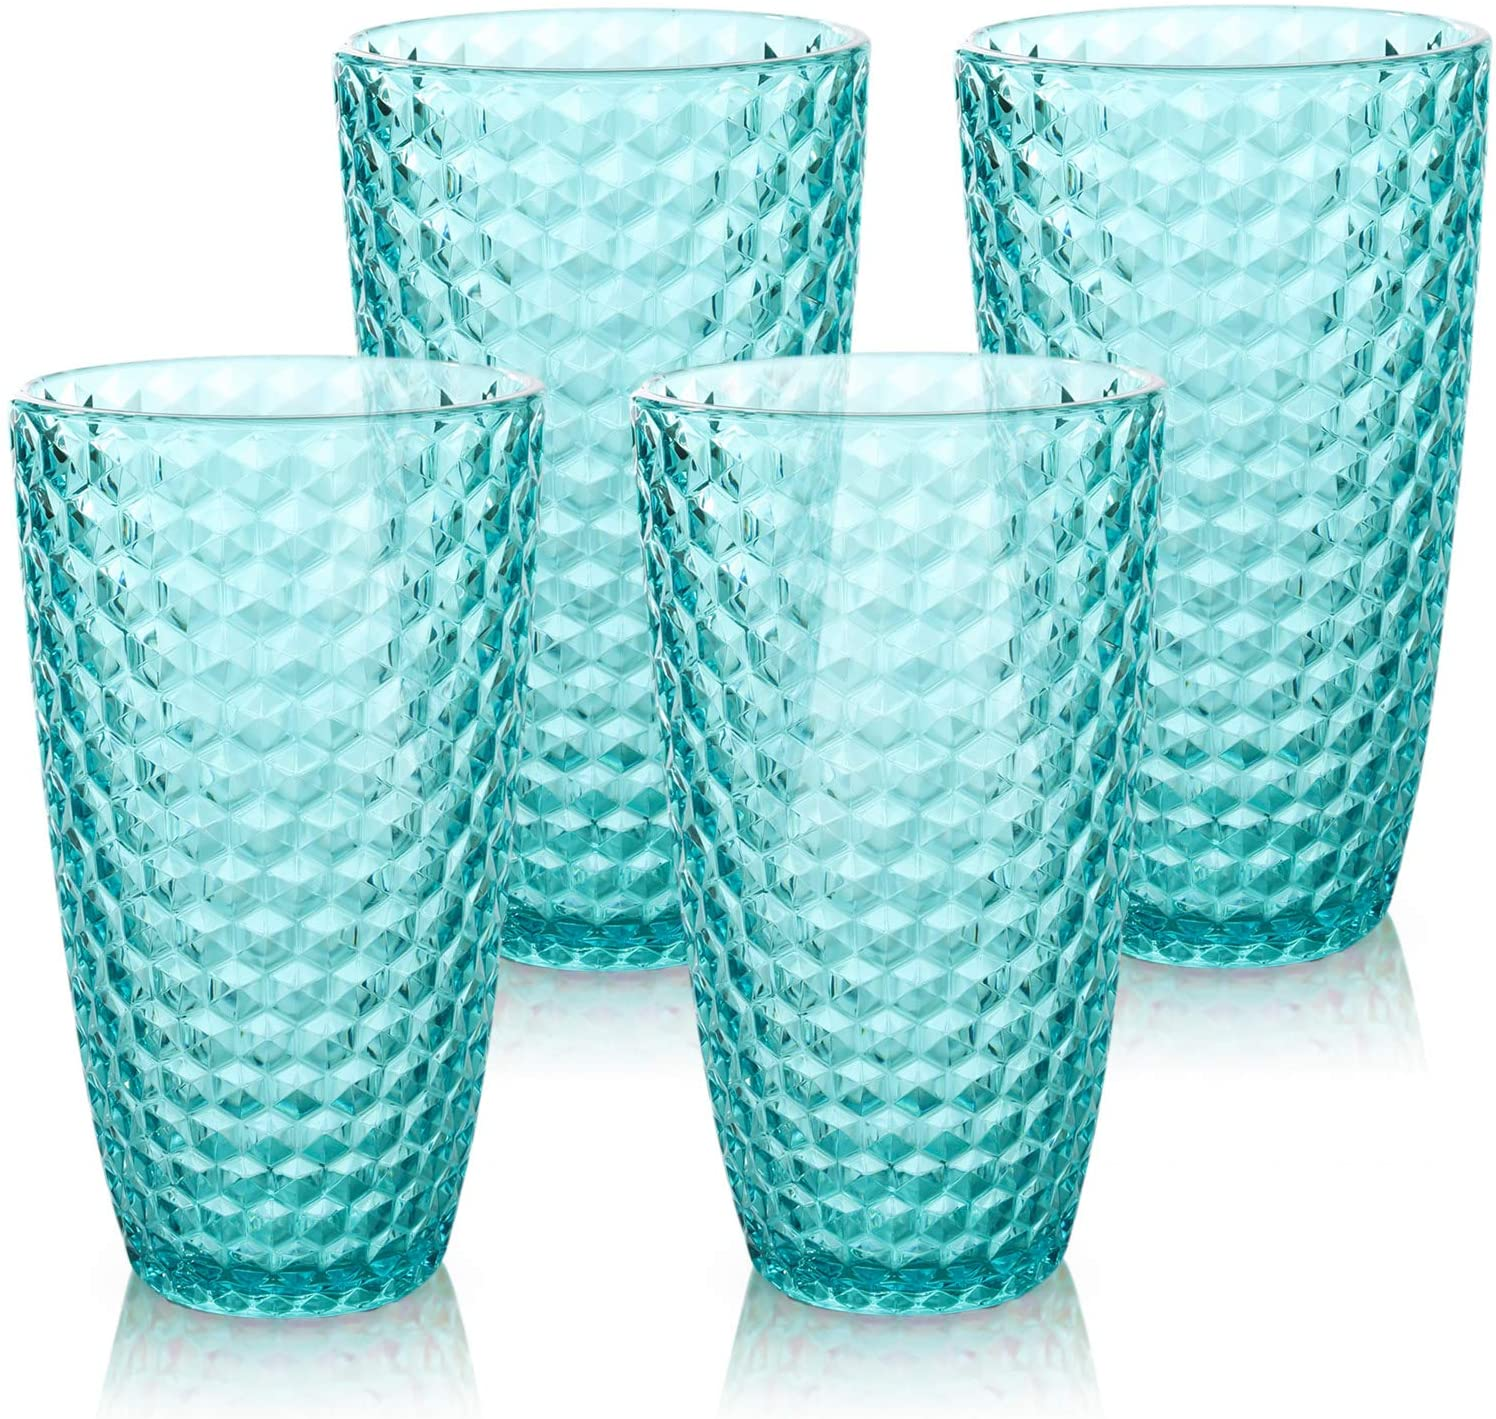 Laguna Beach Tall Tumbler Blue, 19oz, Set of 4, Shatterproof Tritan Drinking Glasses, Plastic Tumblers - Unbreakable Glassware for Indoor and Outdoor Use - Reusable Drinkware